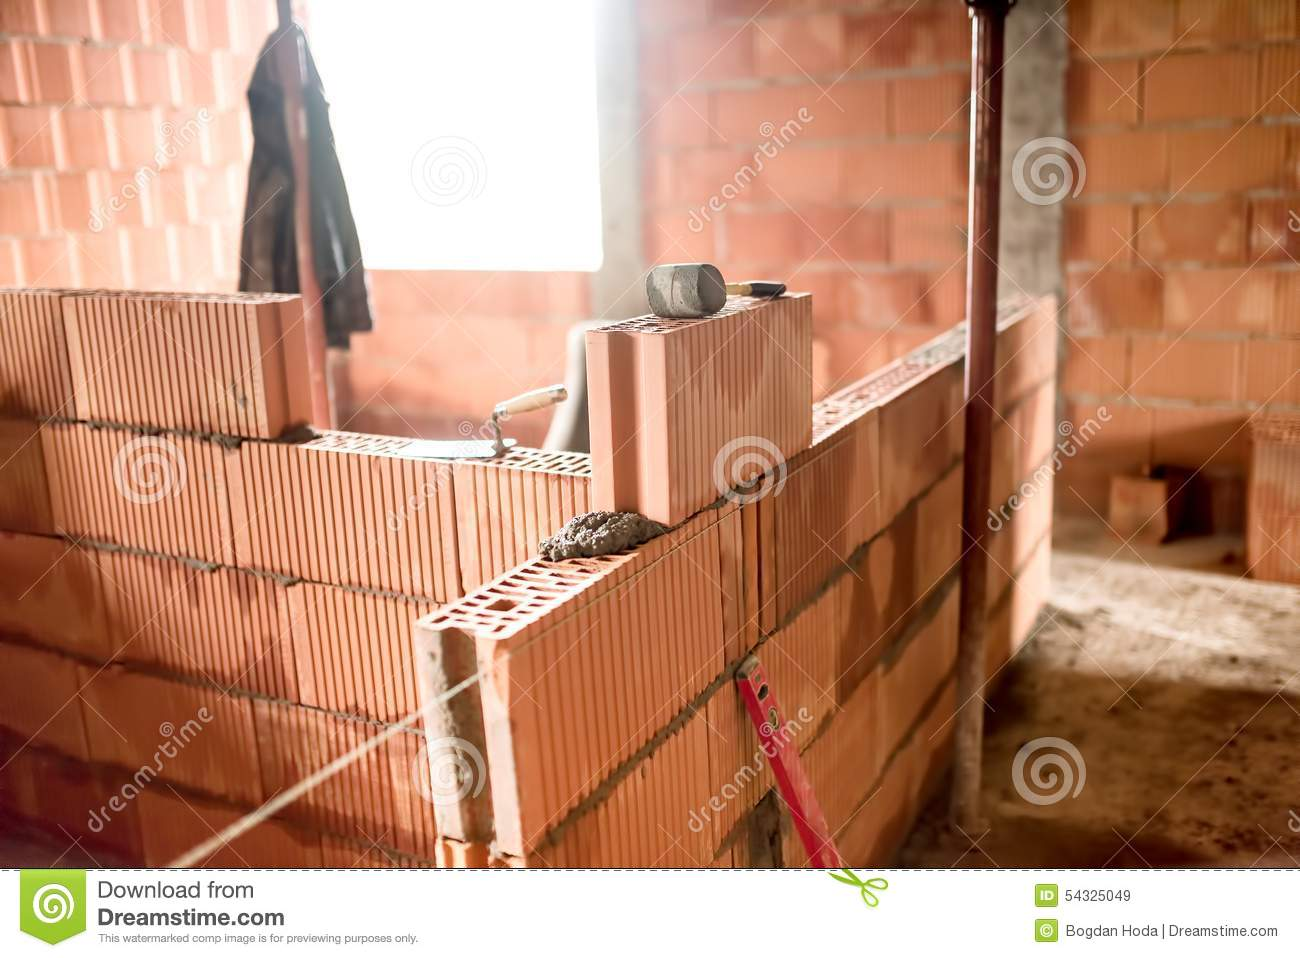 Construction Site With Bricklayer Building New House With Brick Walls Interior Rooms Stock